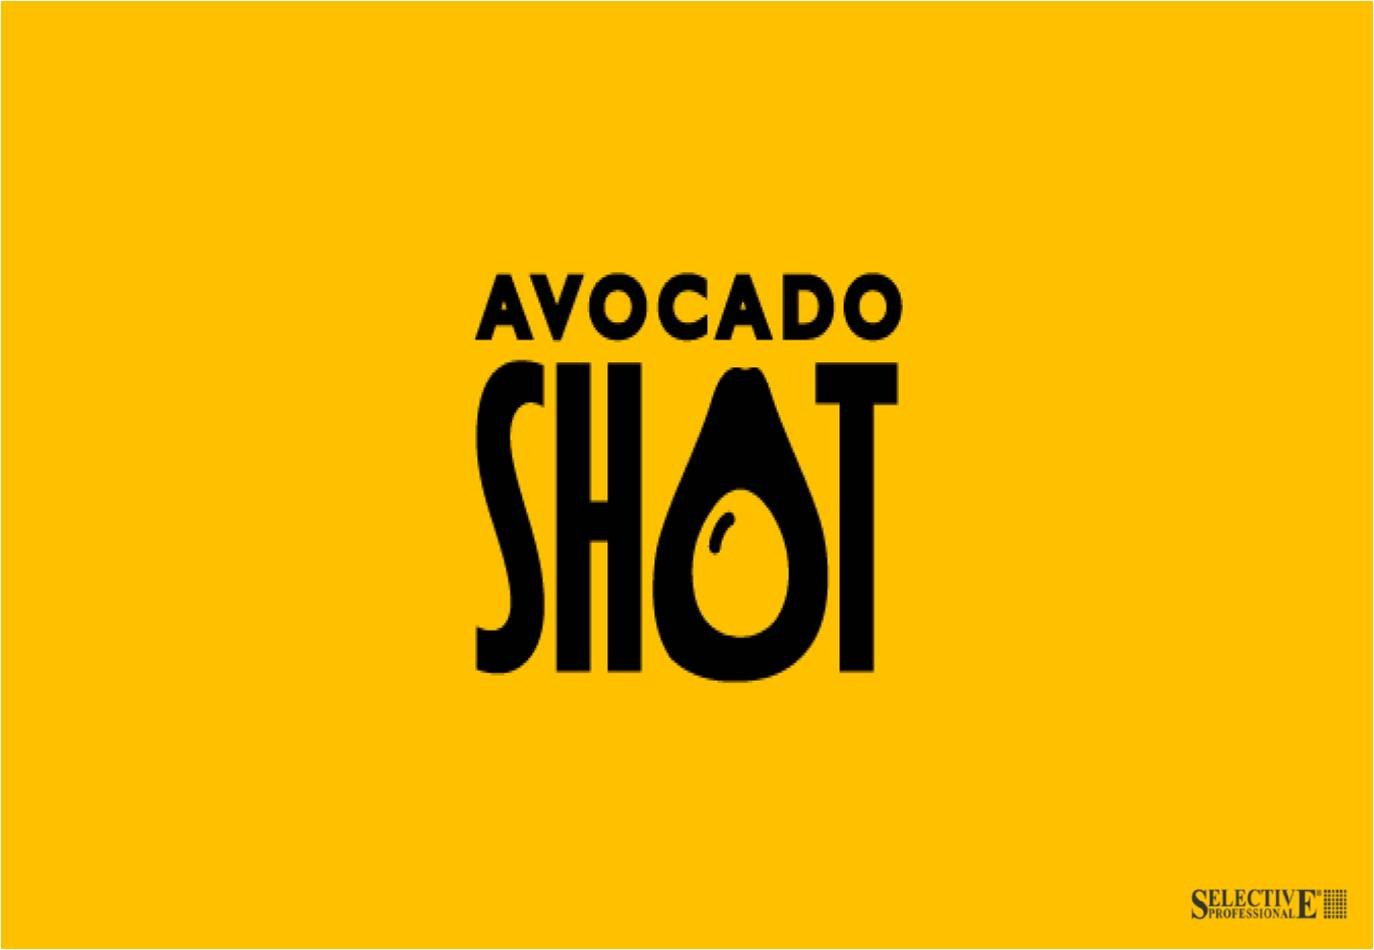 Selective Professional презентация AVOCADO SHOT